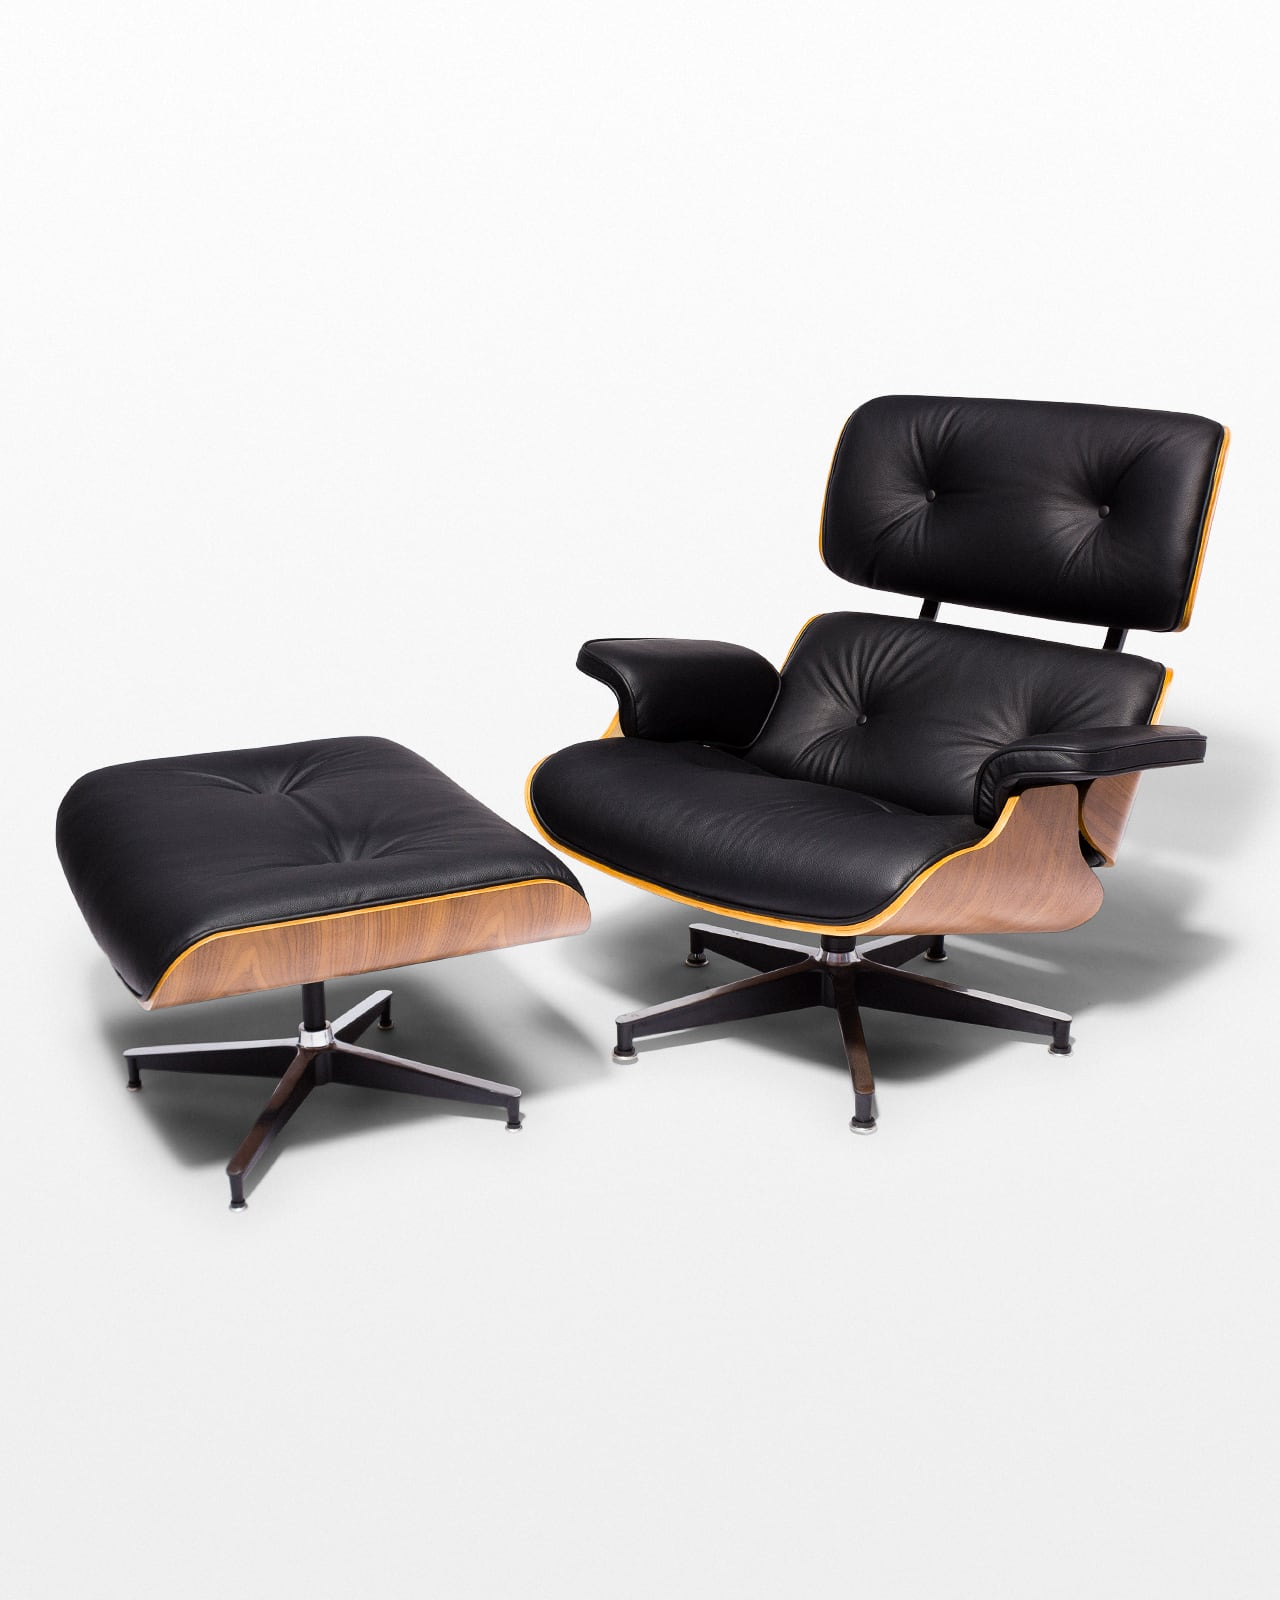 Astonishing Ch587 Black Eames Style Lounge Chair And Ottoman Prop Rental Short Links Chair Design For Home Short Linksinfo